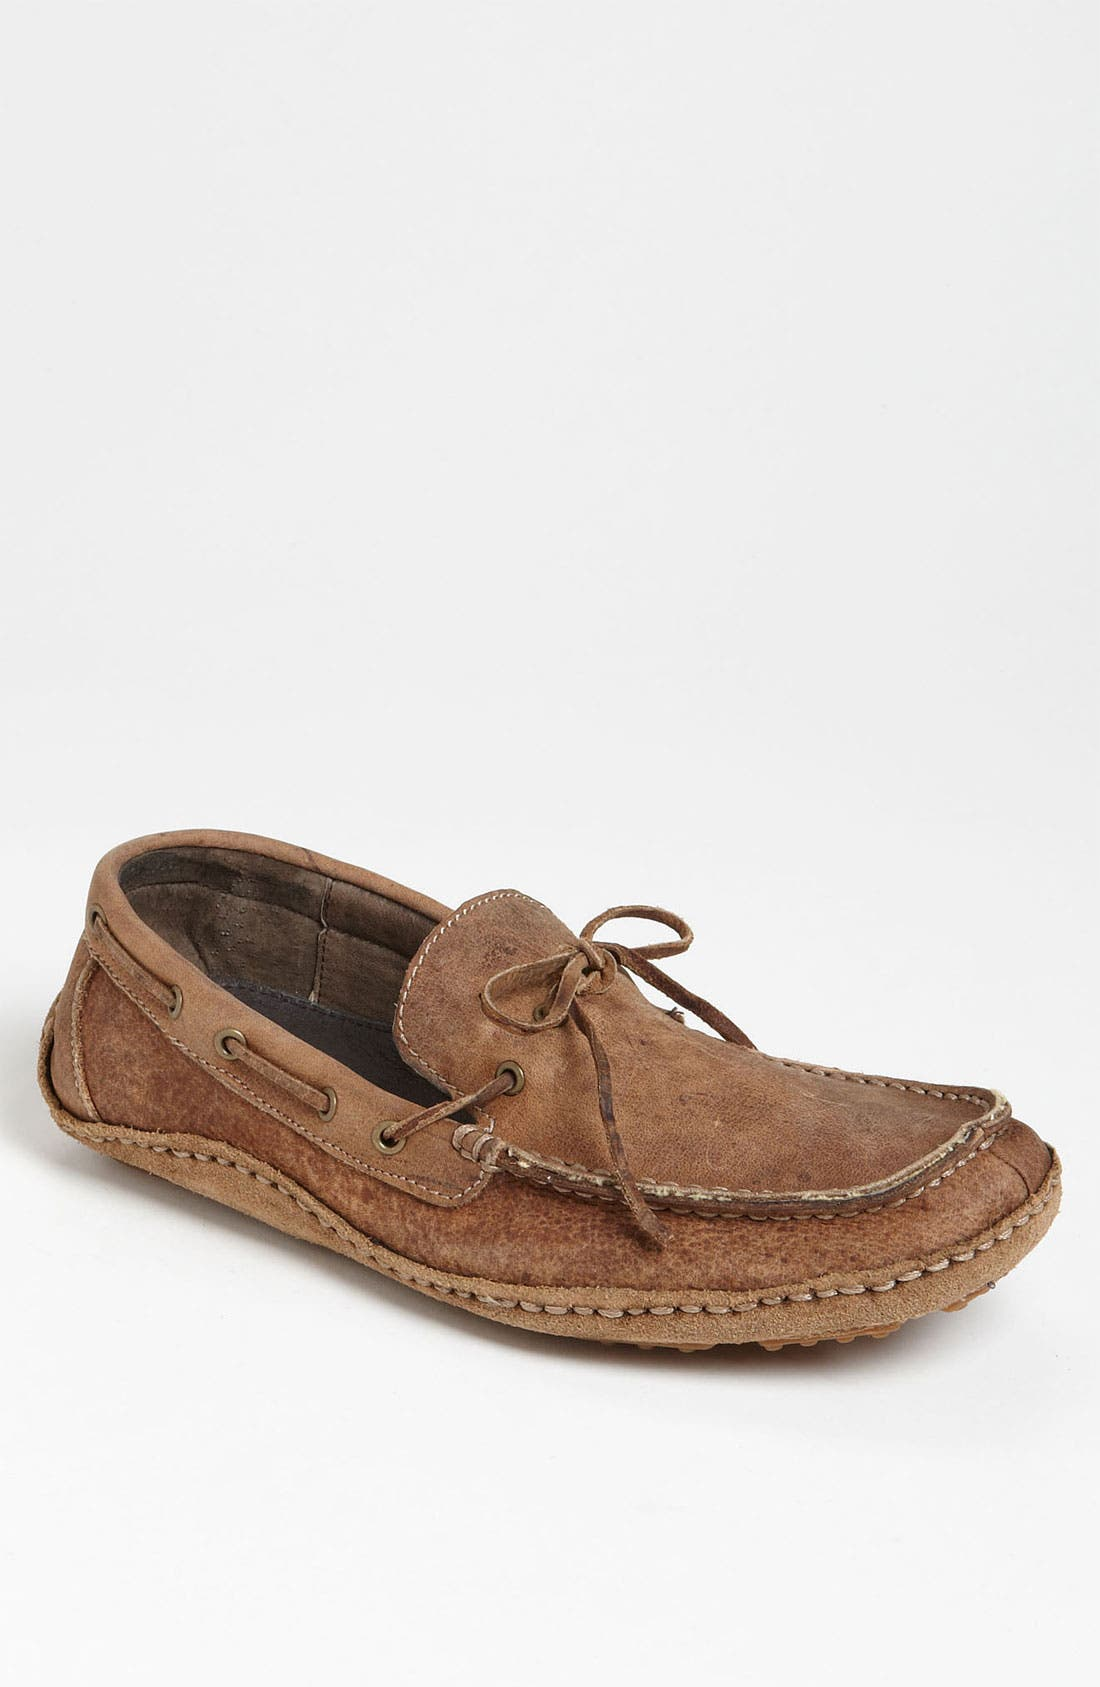 Main Image - Bed Stu 'Surfliner' Driving Shoe (Online Only) (Men)